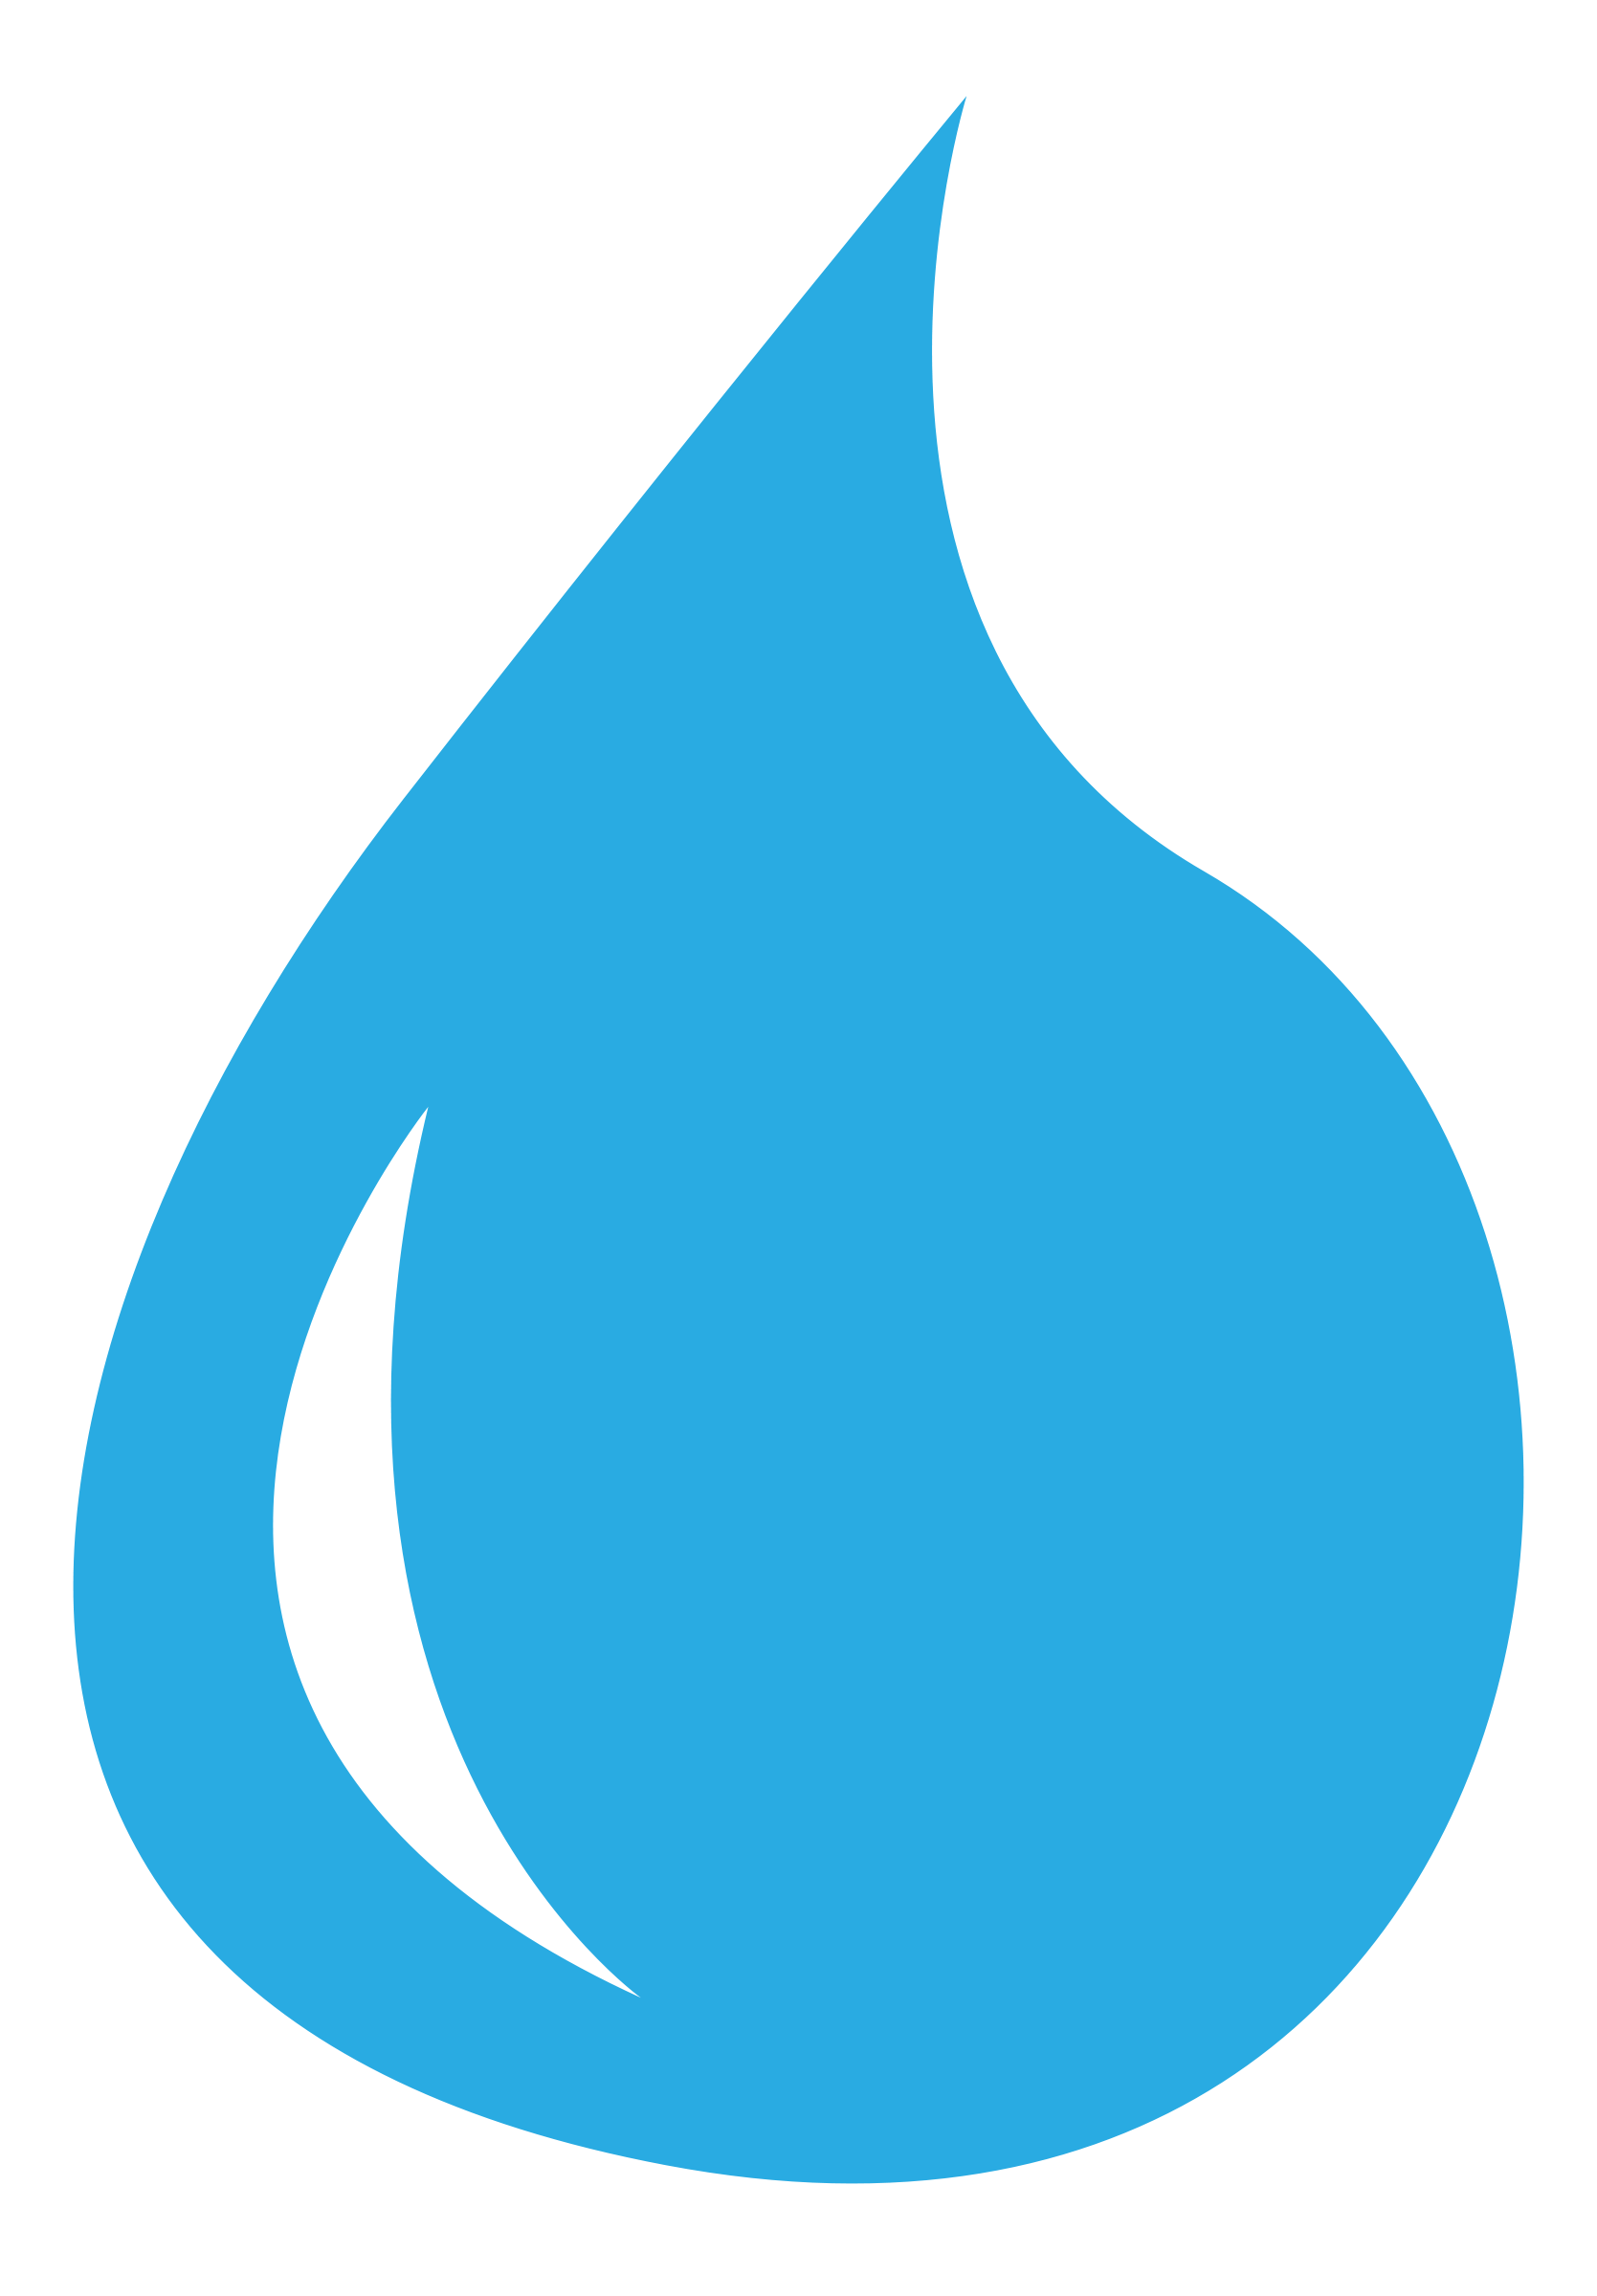 Water Drops Clipart Png.